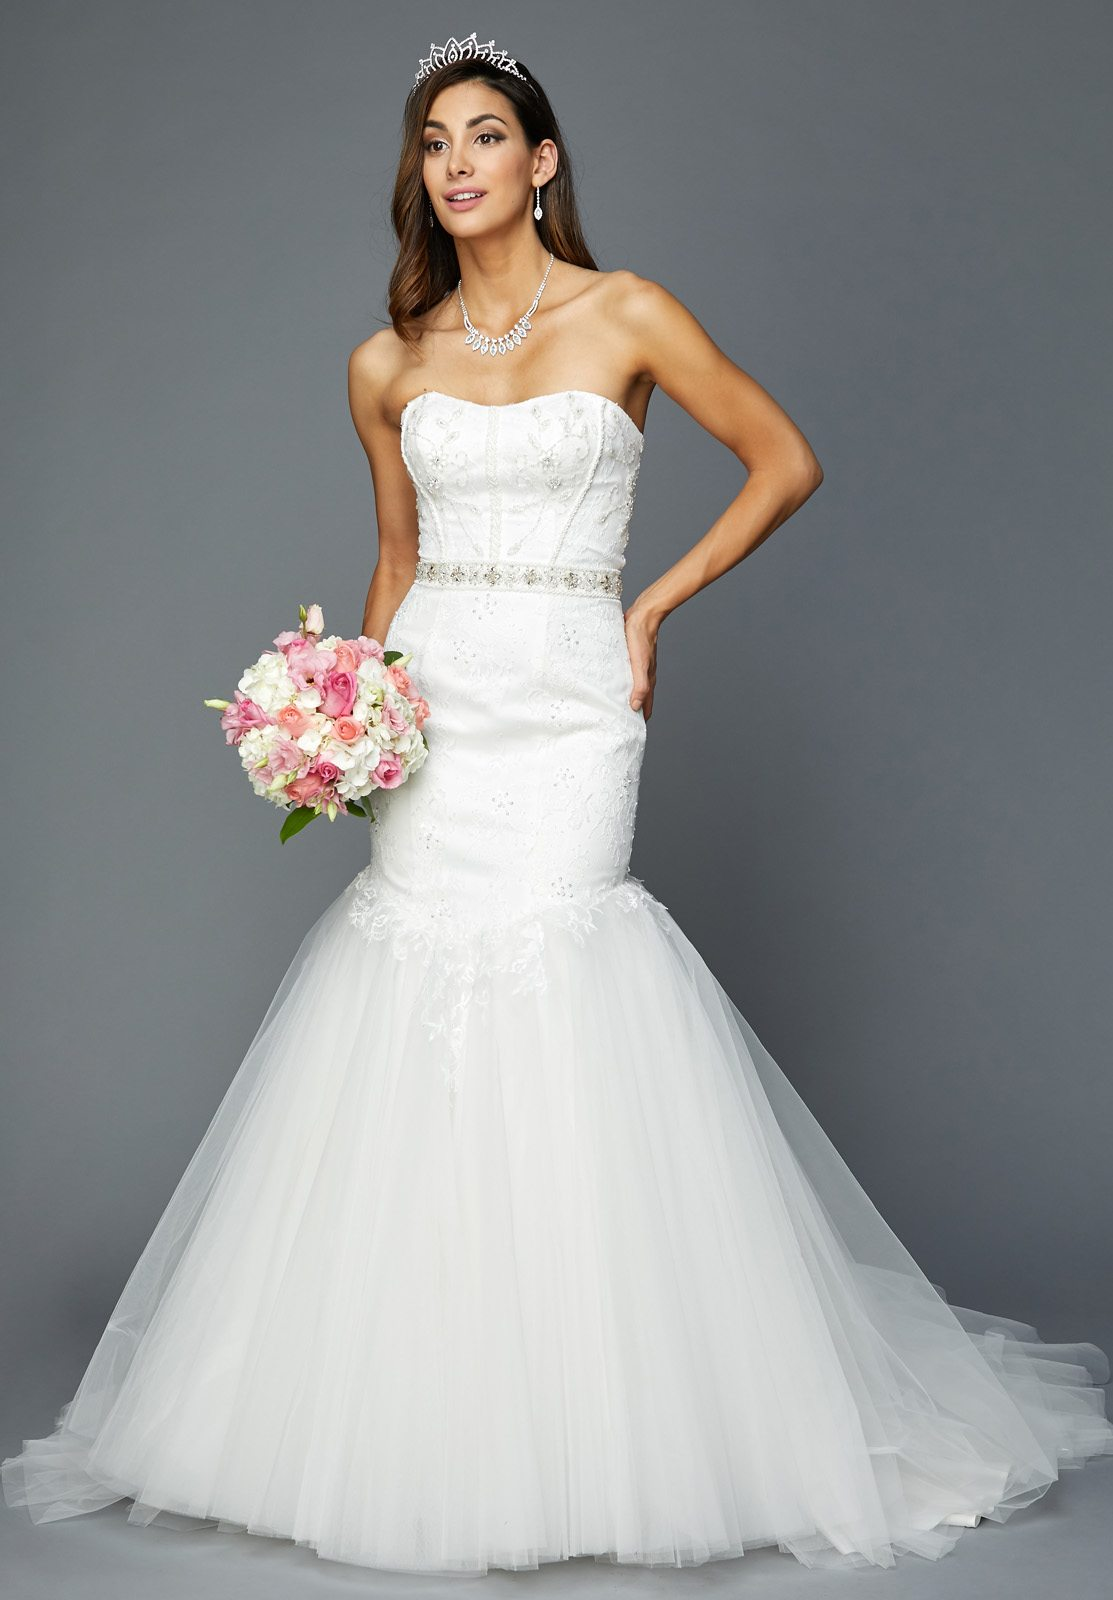 2bf9e5df1ef Strapless White Wedding Gown Beaded Bodice and Waist Trumpet Style. Tap to  expand